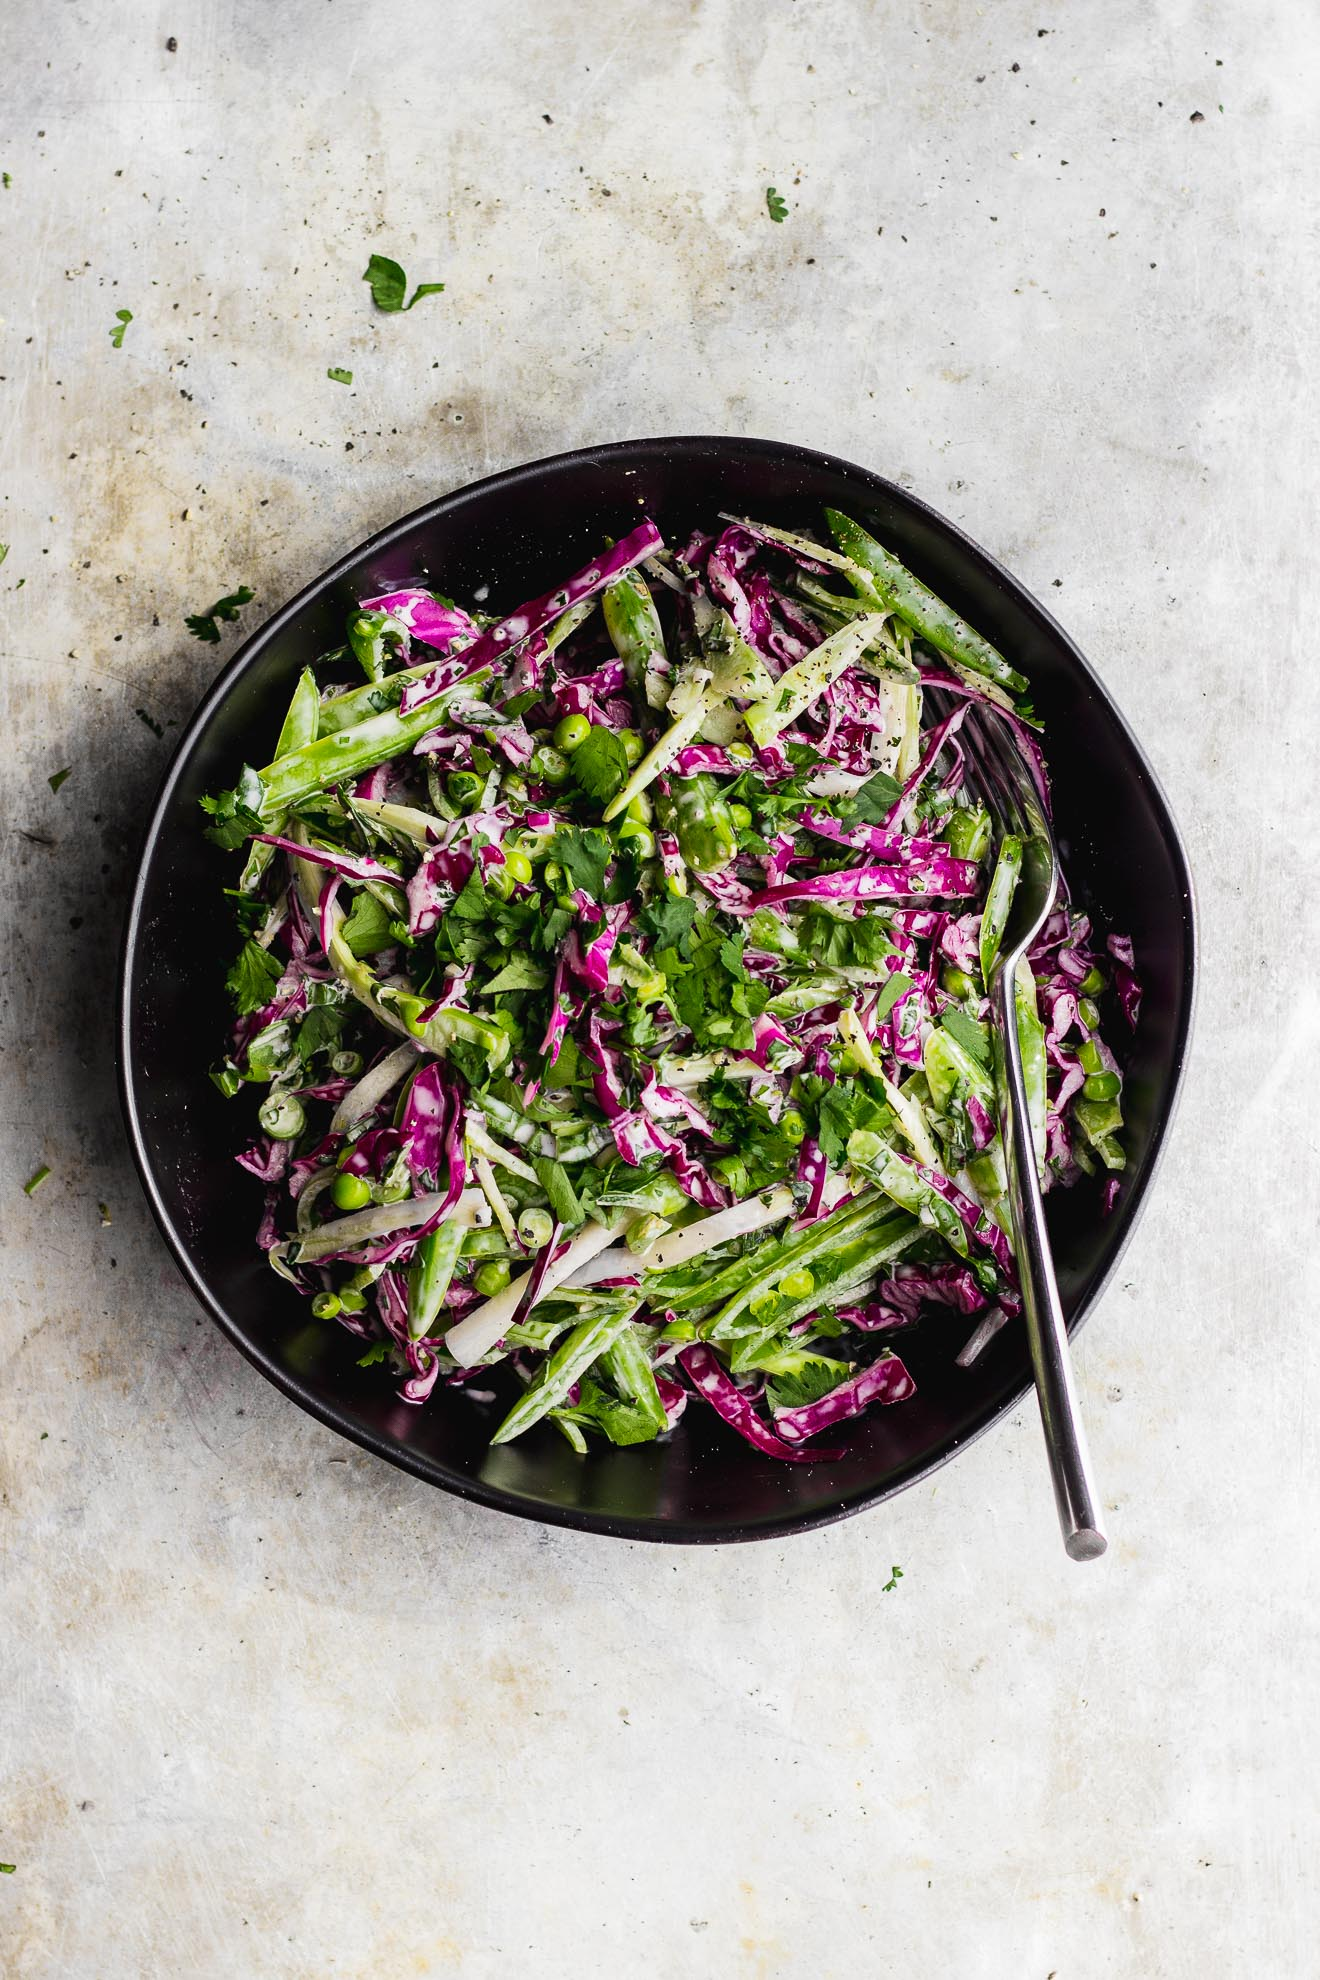 Broccoli Stem Slaw with Snap Peas + Basil Cilantro Aioli | A broccoli stem slaw with snap peas and red cabbage and an herby basil cilantro aioli. A vegan, gluten-free creamy broccoli stem slaw recipe. #broccolistemrecipes #herbyslaw